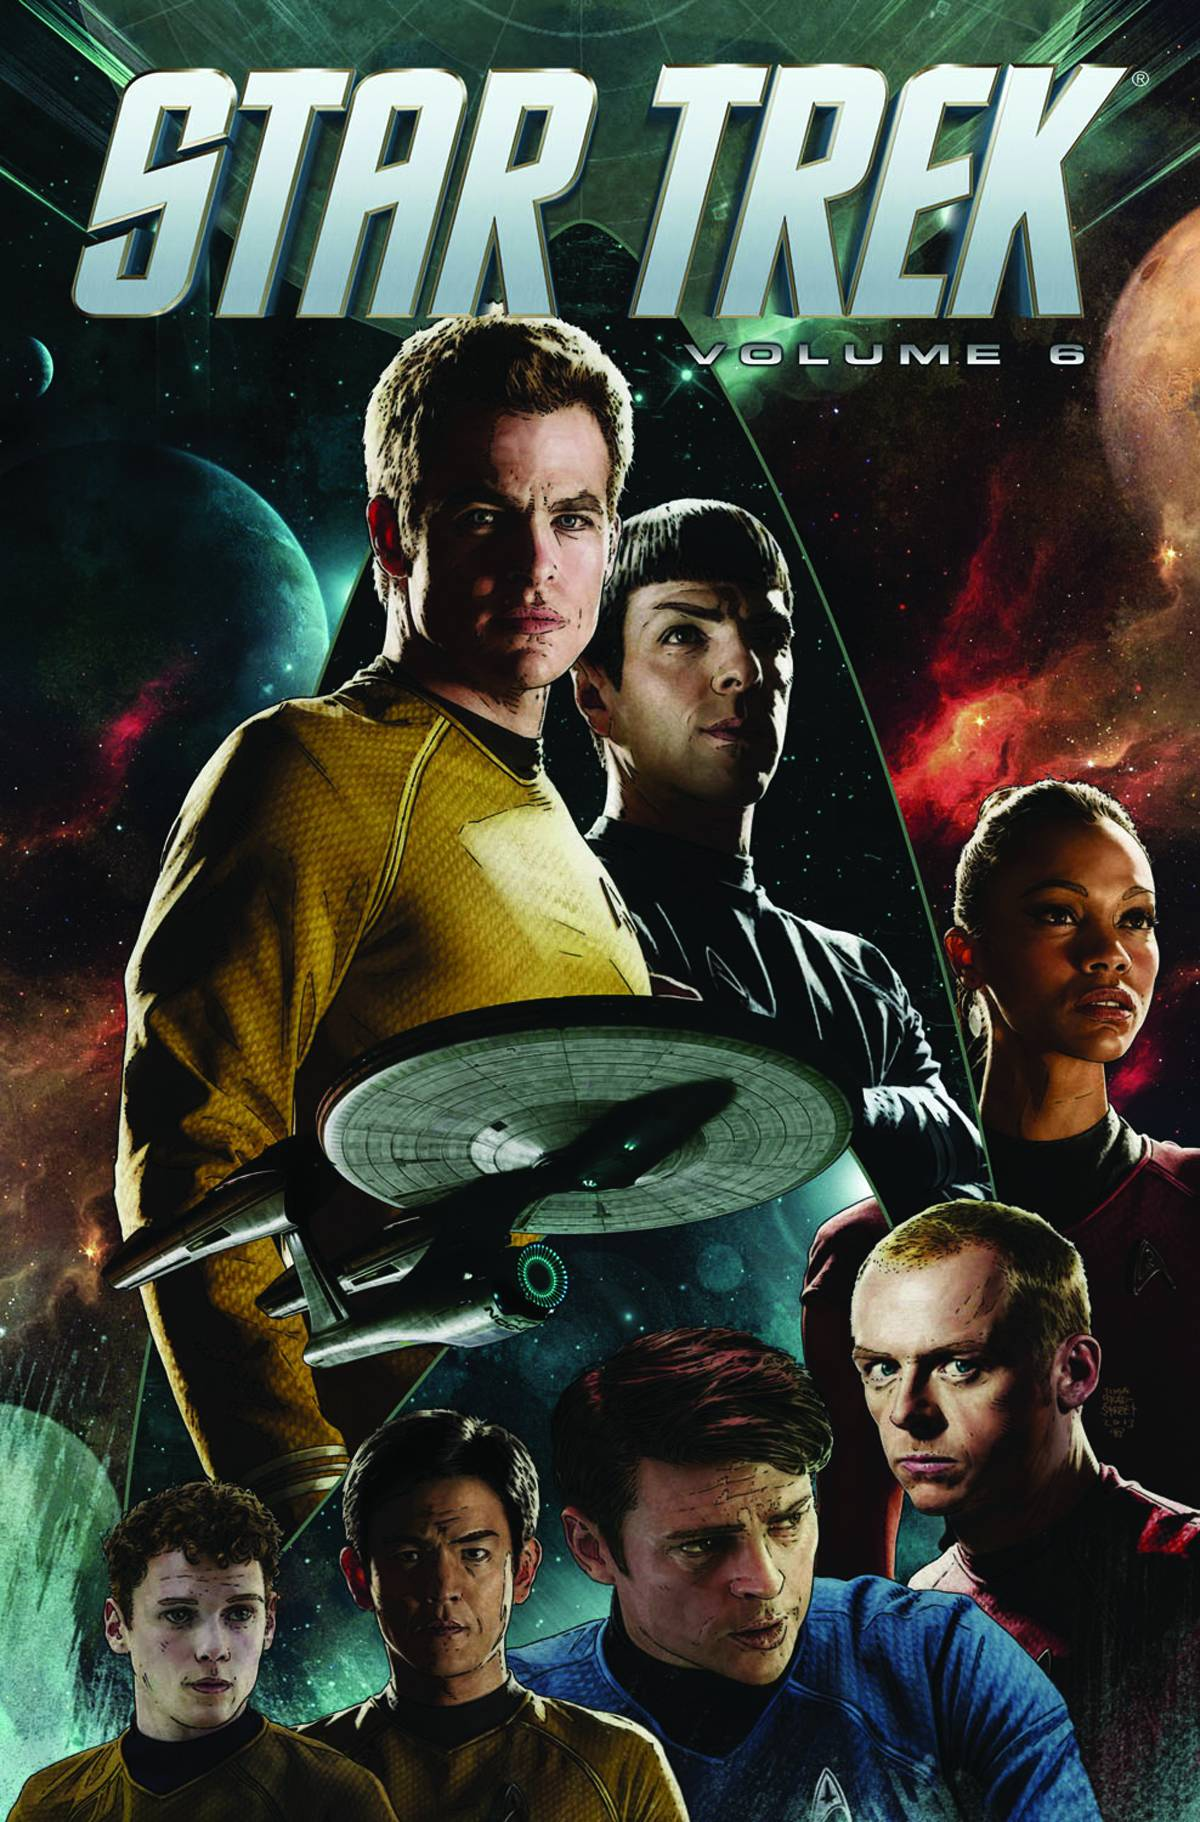 STAR TREK ONGOING TP VOL 06 AFTER DARKNESS